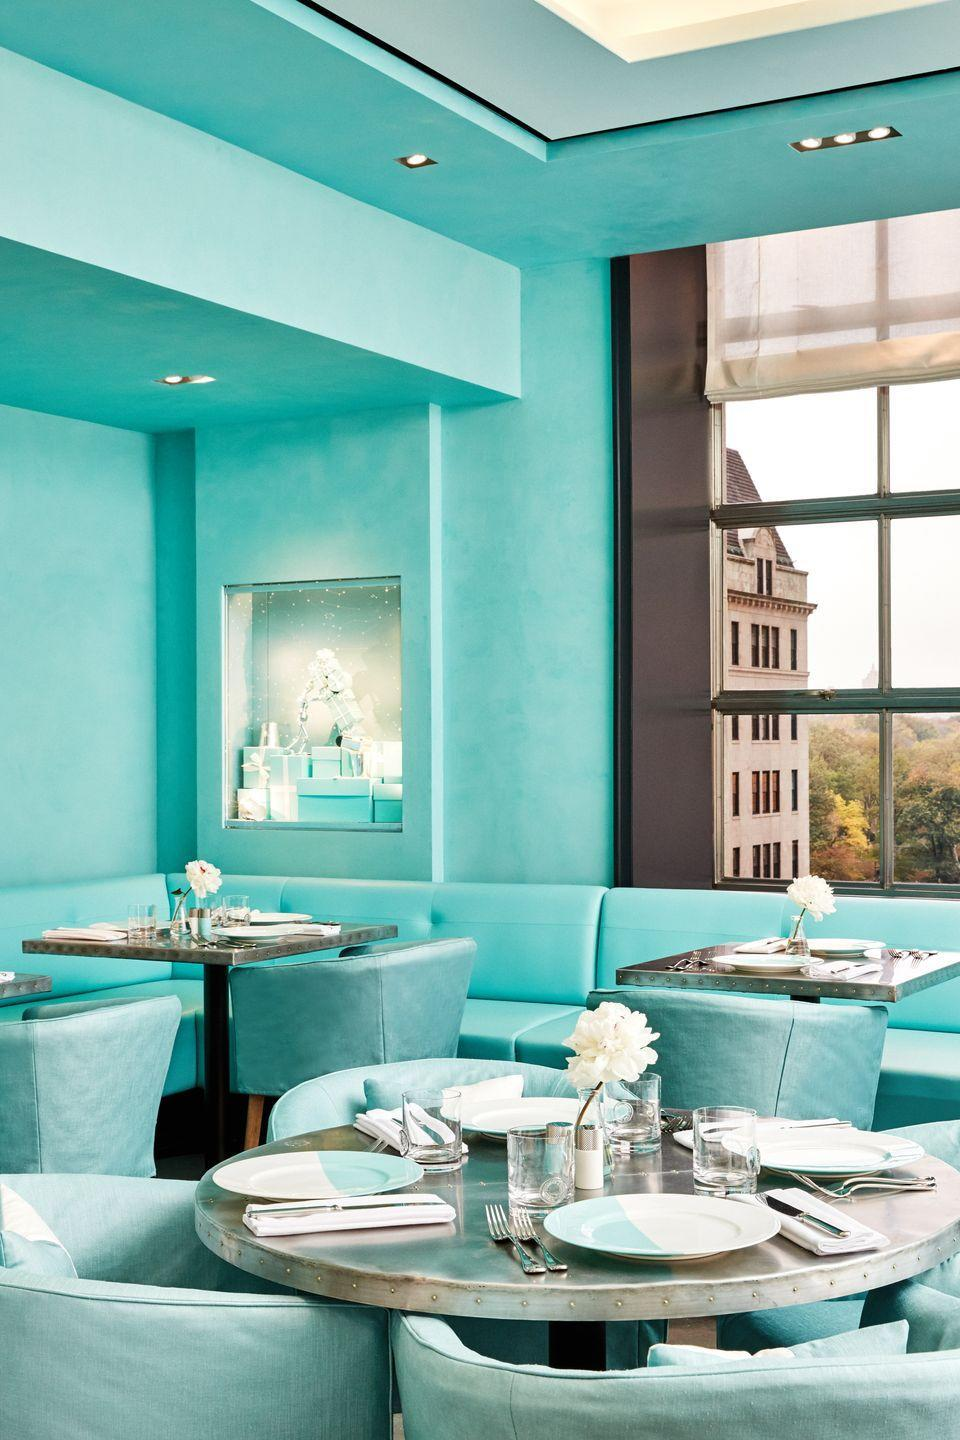 """<p>Tiffany & Co. has been a fixture on the corner of Fifth Avenue and 57th Street in Manhattan since it <a href=""""https://www.townandcountrymag.com/leisure/dining/a13452761/tiffany-and-co-new-york-blue-box-cafe/"""" rel=""""nofollow noopener"""" target=""""_blank"""" data-ylk=""""slk:opened its doors on October 21"""" class=""""link rapid-noclick-resp"""">opened its doors on October 21</a>, 1940, and the all-day <a href=""""https://www.tiffany.com/blue-box-cafe/"""" rel=""""nofollow noopener"""" target=""""_blank"""" data-ylk=""""slk:Tiffany Blue café"""" class=""""link rapid-noclick-resp"""">Tiffany Blue café</a> drew in crowds from around the country when it opened in 2018. Due to the ongoing pandemic, the cafe is temporarily closed but is scheduled to reopen in 2022 alongside the Tiffany New York flagship reopening. </p><p><strong>More</strong>: <a href=""""https://www.townandcountrymag.com/leisure/dining/a2570/best-places-for-tea-in-new-york-city/"""" rel=""""nofollow noopener"""" target=""""_blank"""" data-ylk=""""slk:The 7 Best Places for Afternoon Tea in New York City"""" class=""""link rapid-noclick-resp"""">The 7 Best Places for Afternoon Tea in New York City</a></p>"""